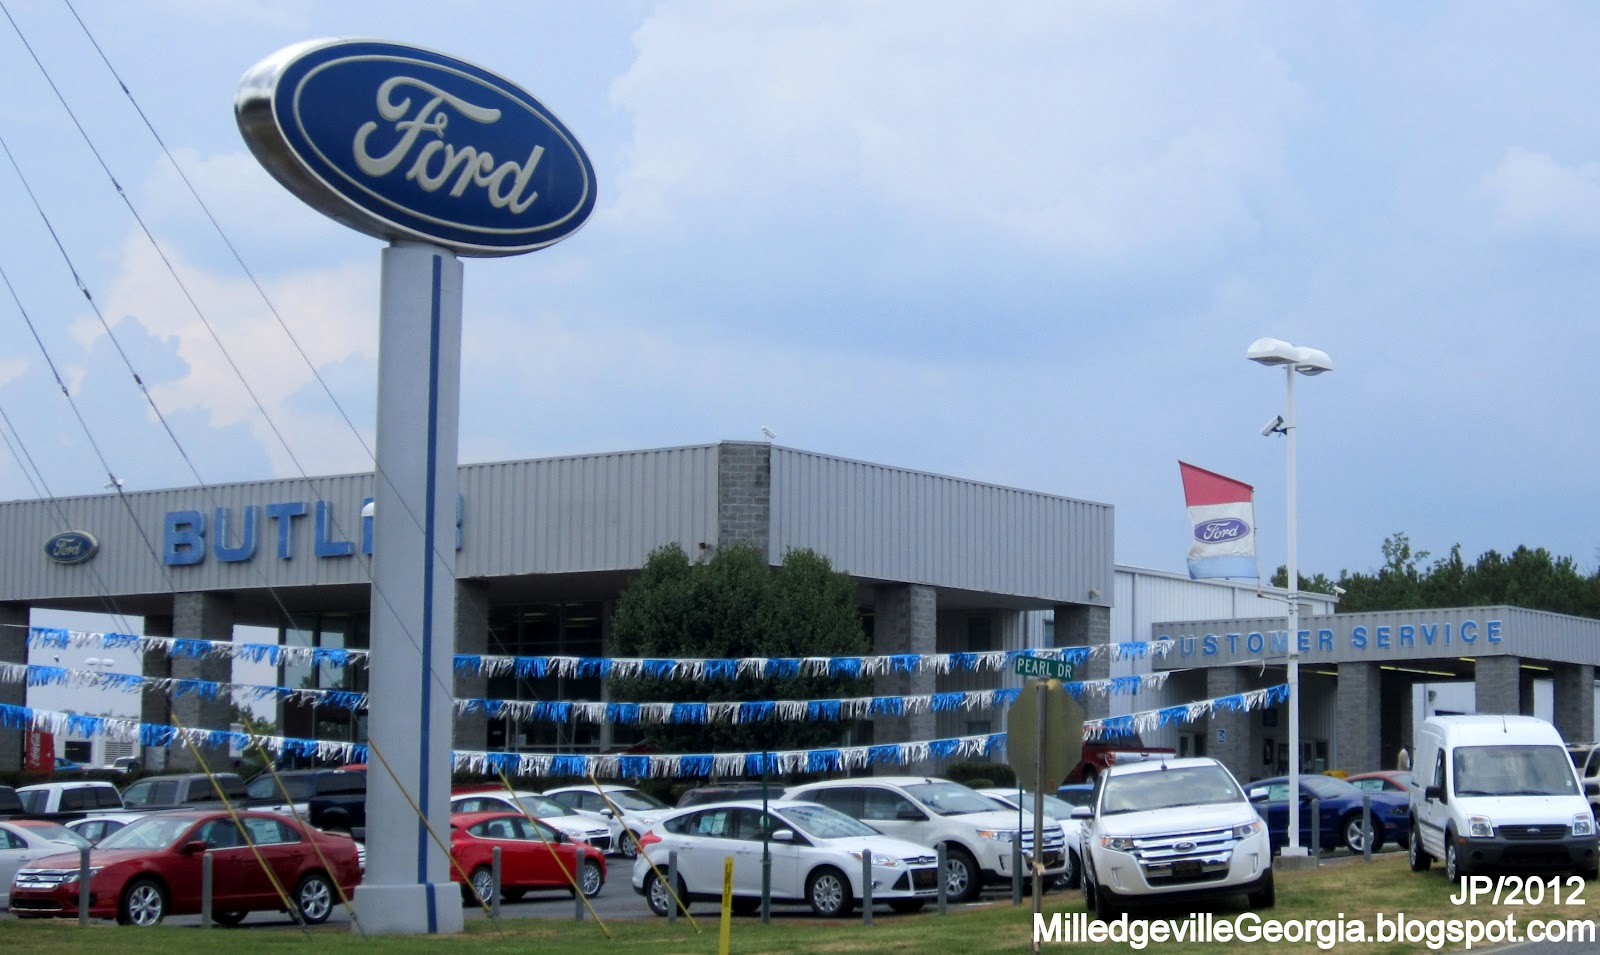 BUTLER FORD Milledgeville Georgia Auto Car Truck Ford Dealership 2631 N Columbia St. Milledgeville GA 31061 Butler Ford Mercury Milledgeville GA. : ford car dealer - markmcfarlin.com